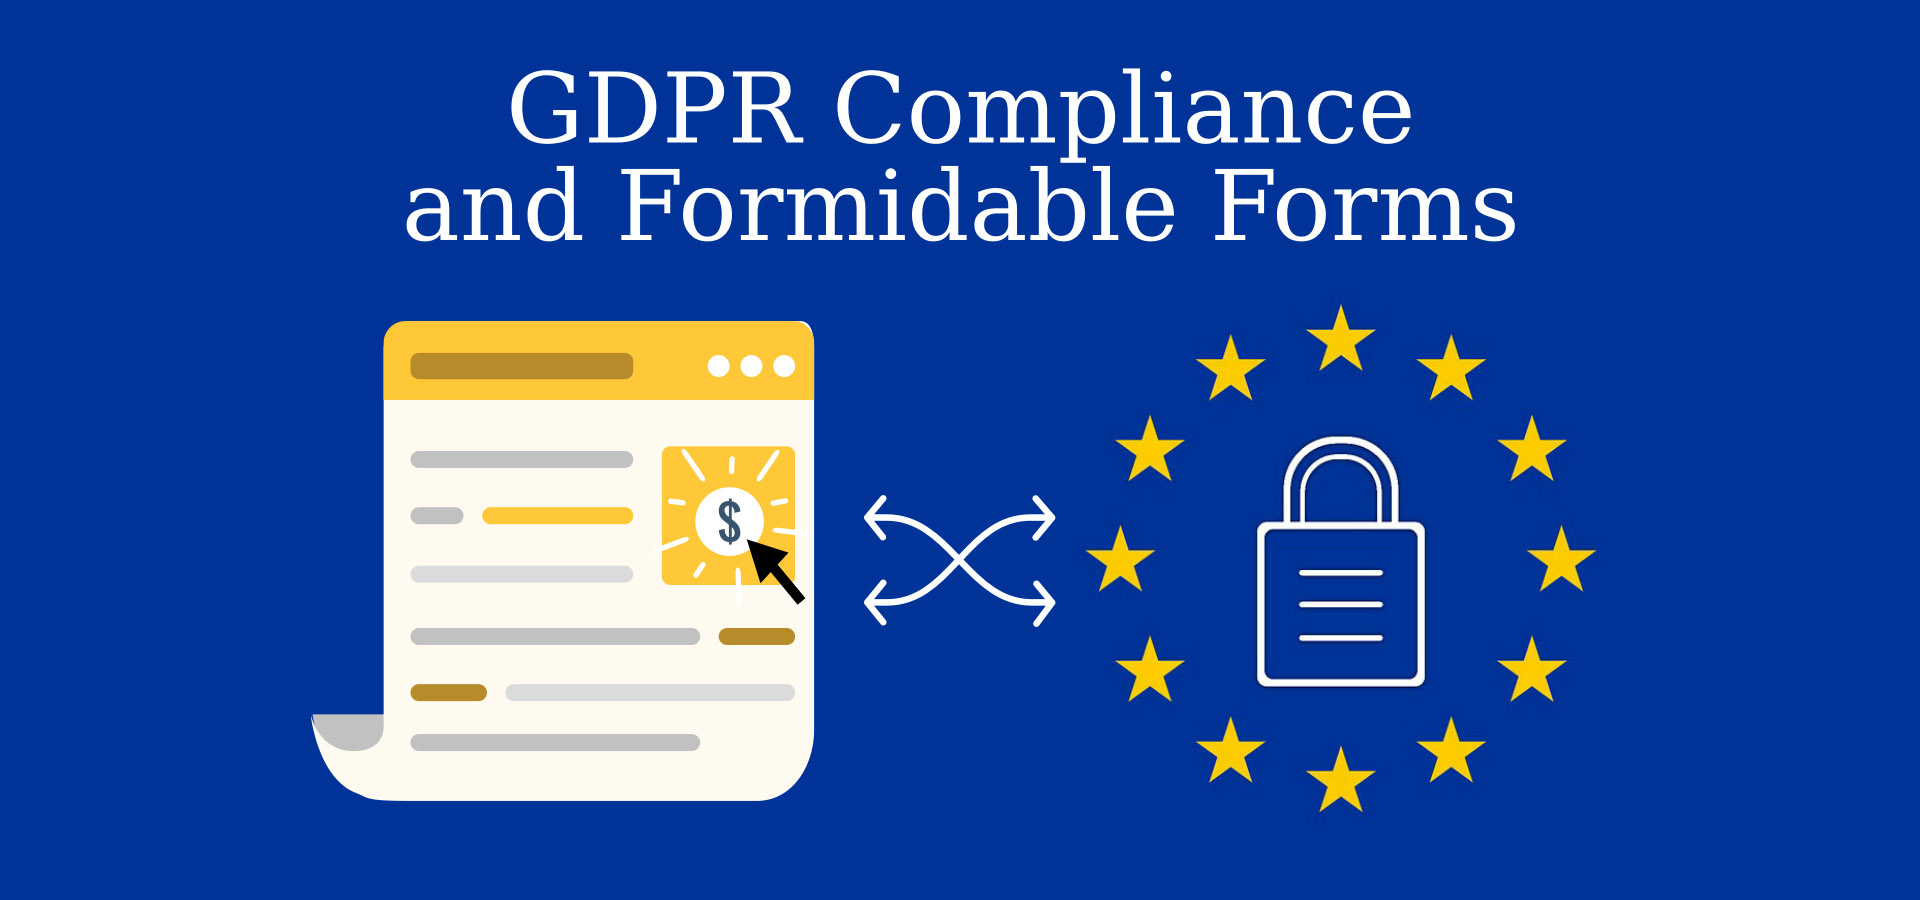 How To Make Gdpr Compliant Wordpress Forms Formidable Forms